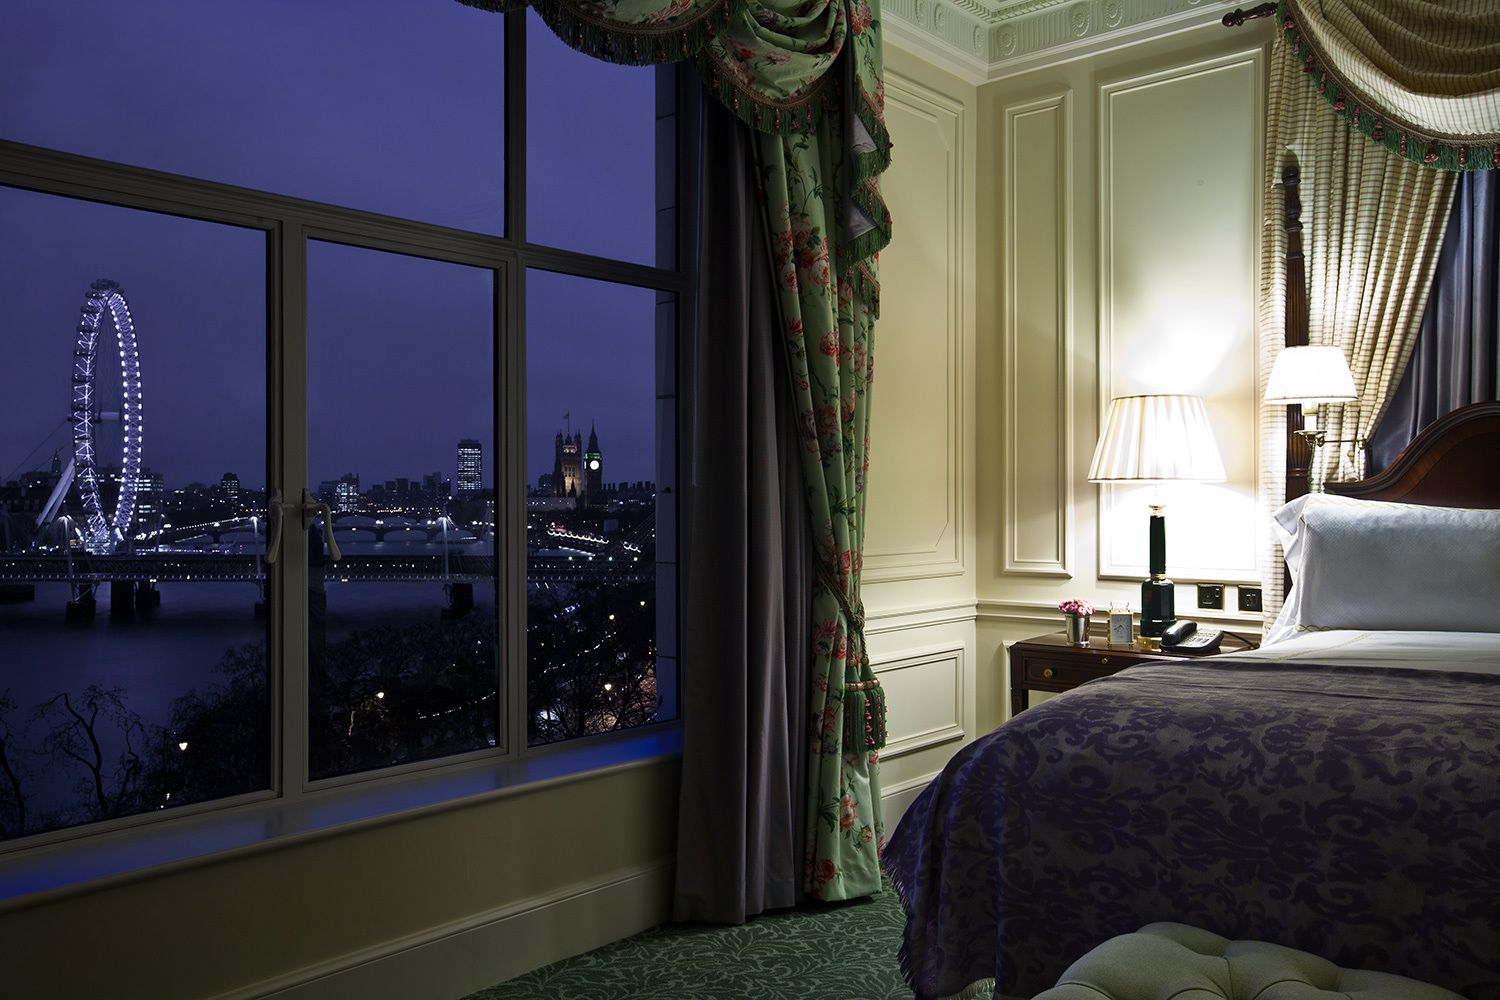 The Savoy Hotel London by Fairmont